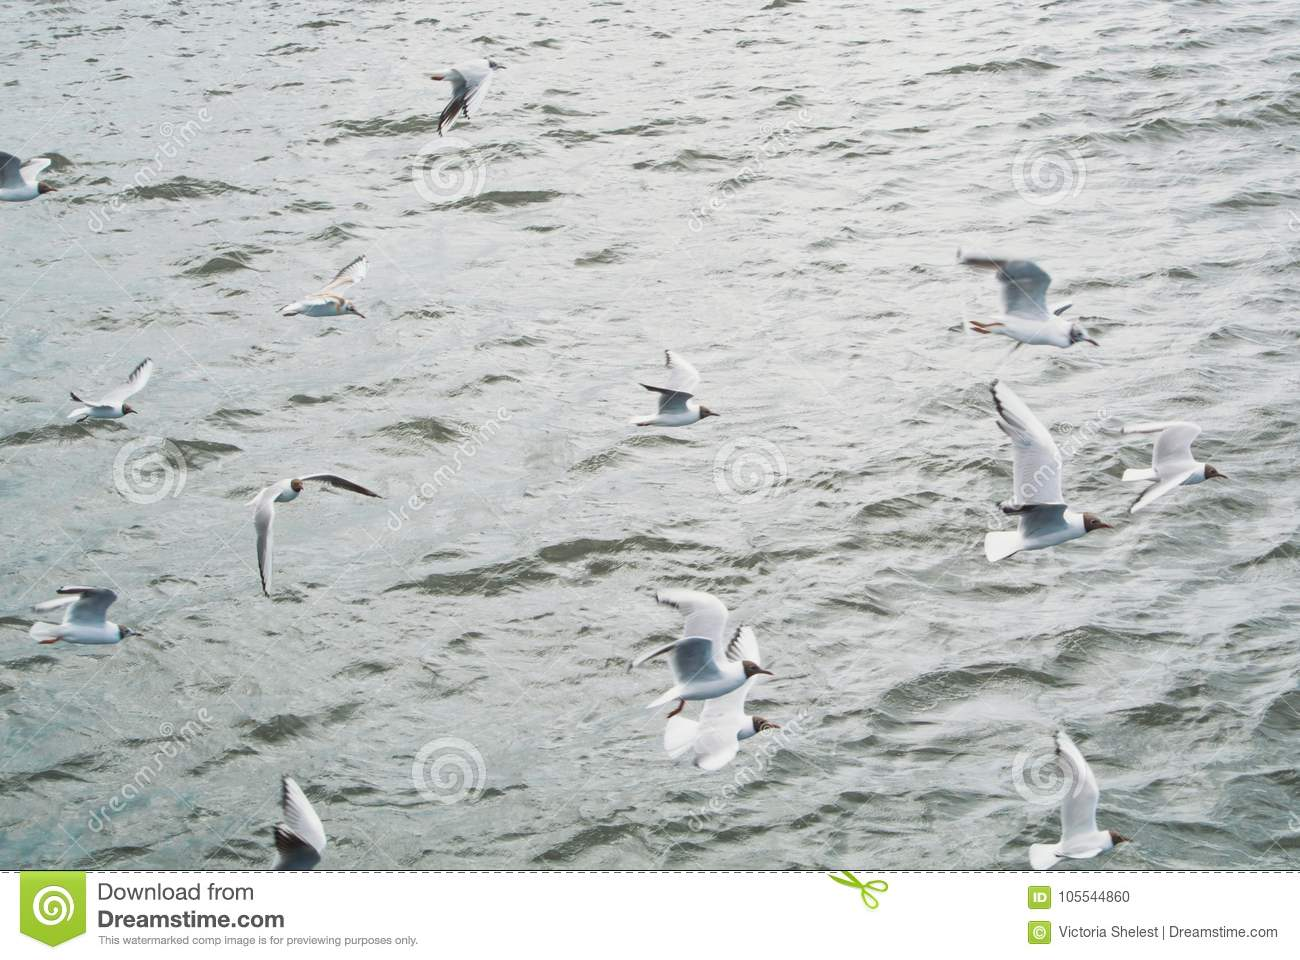 Water sea background with a large group flock of seagulls flying